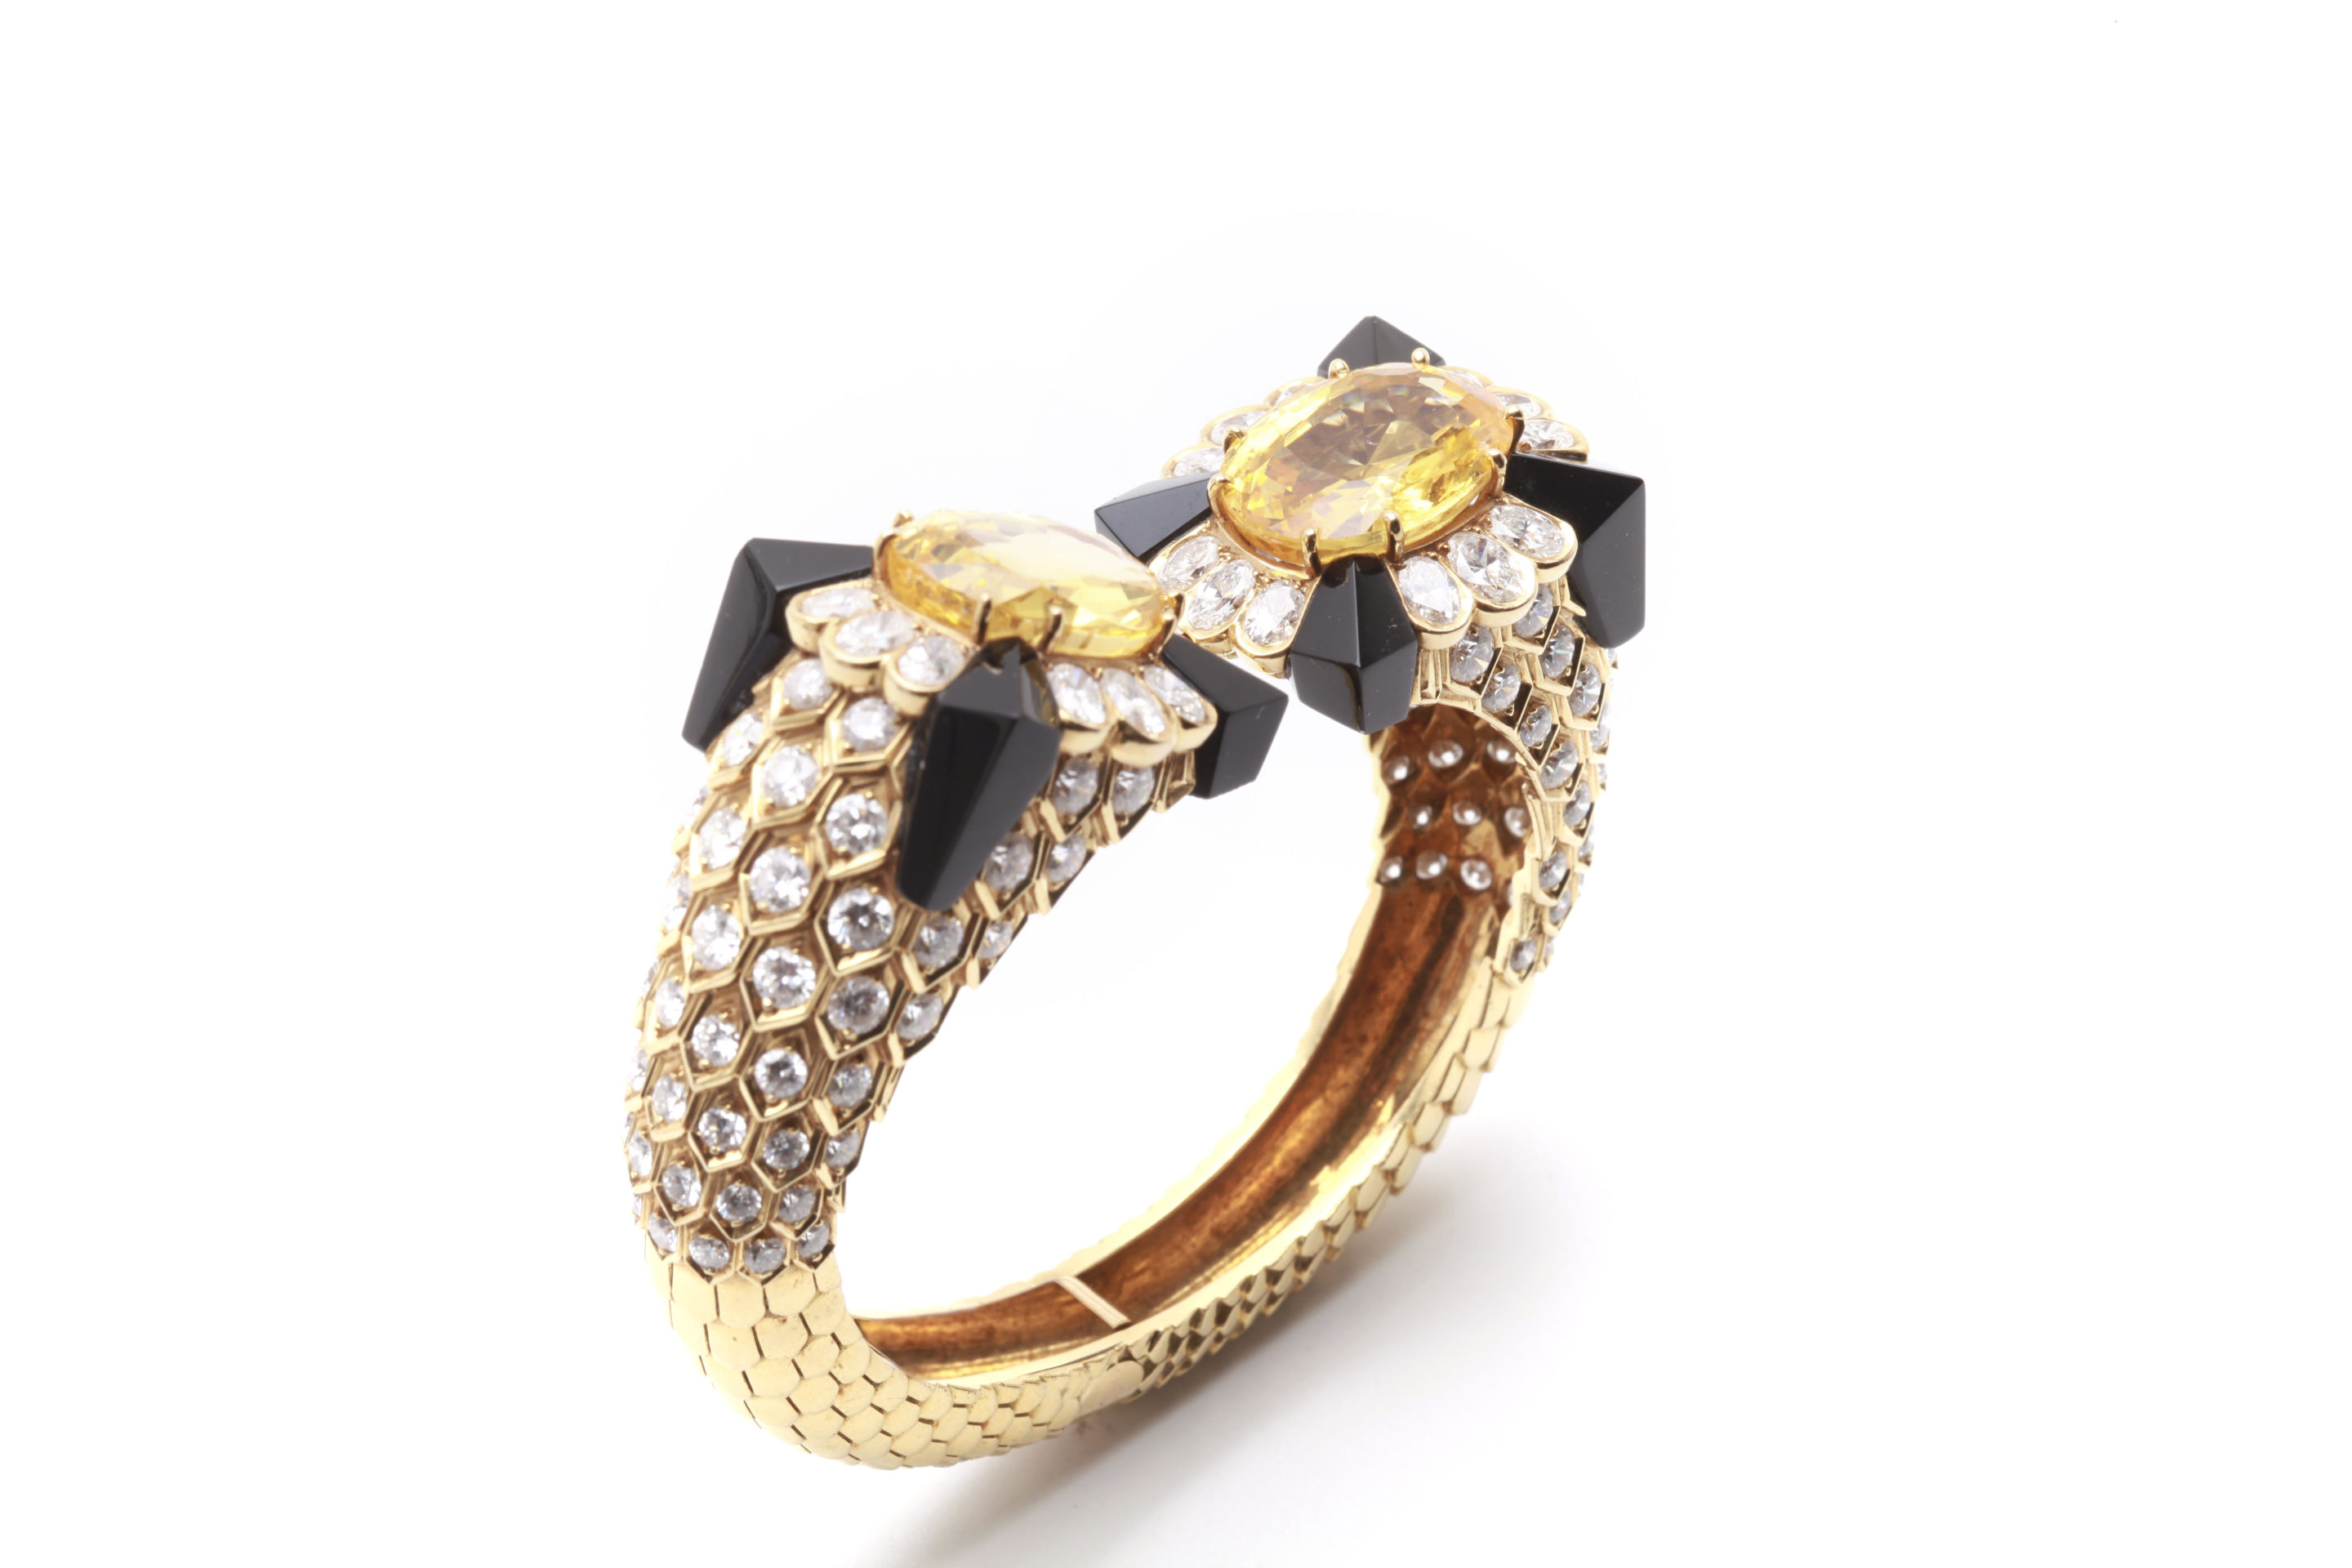 art products rarities deco midnight collections after wedding rings filigree ring diamond onyx shot